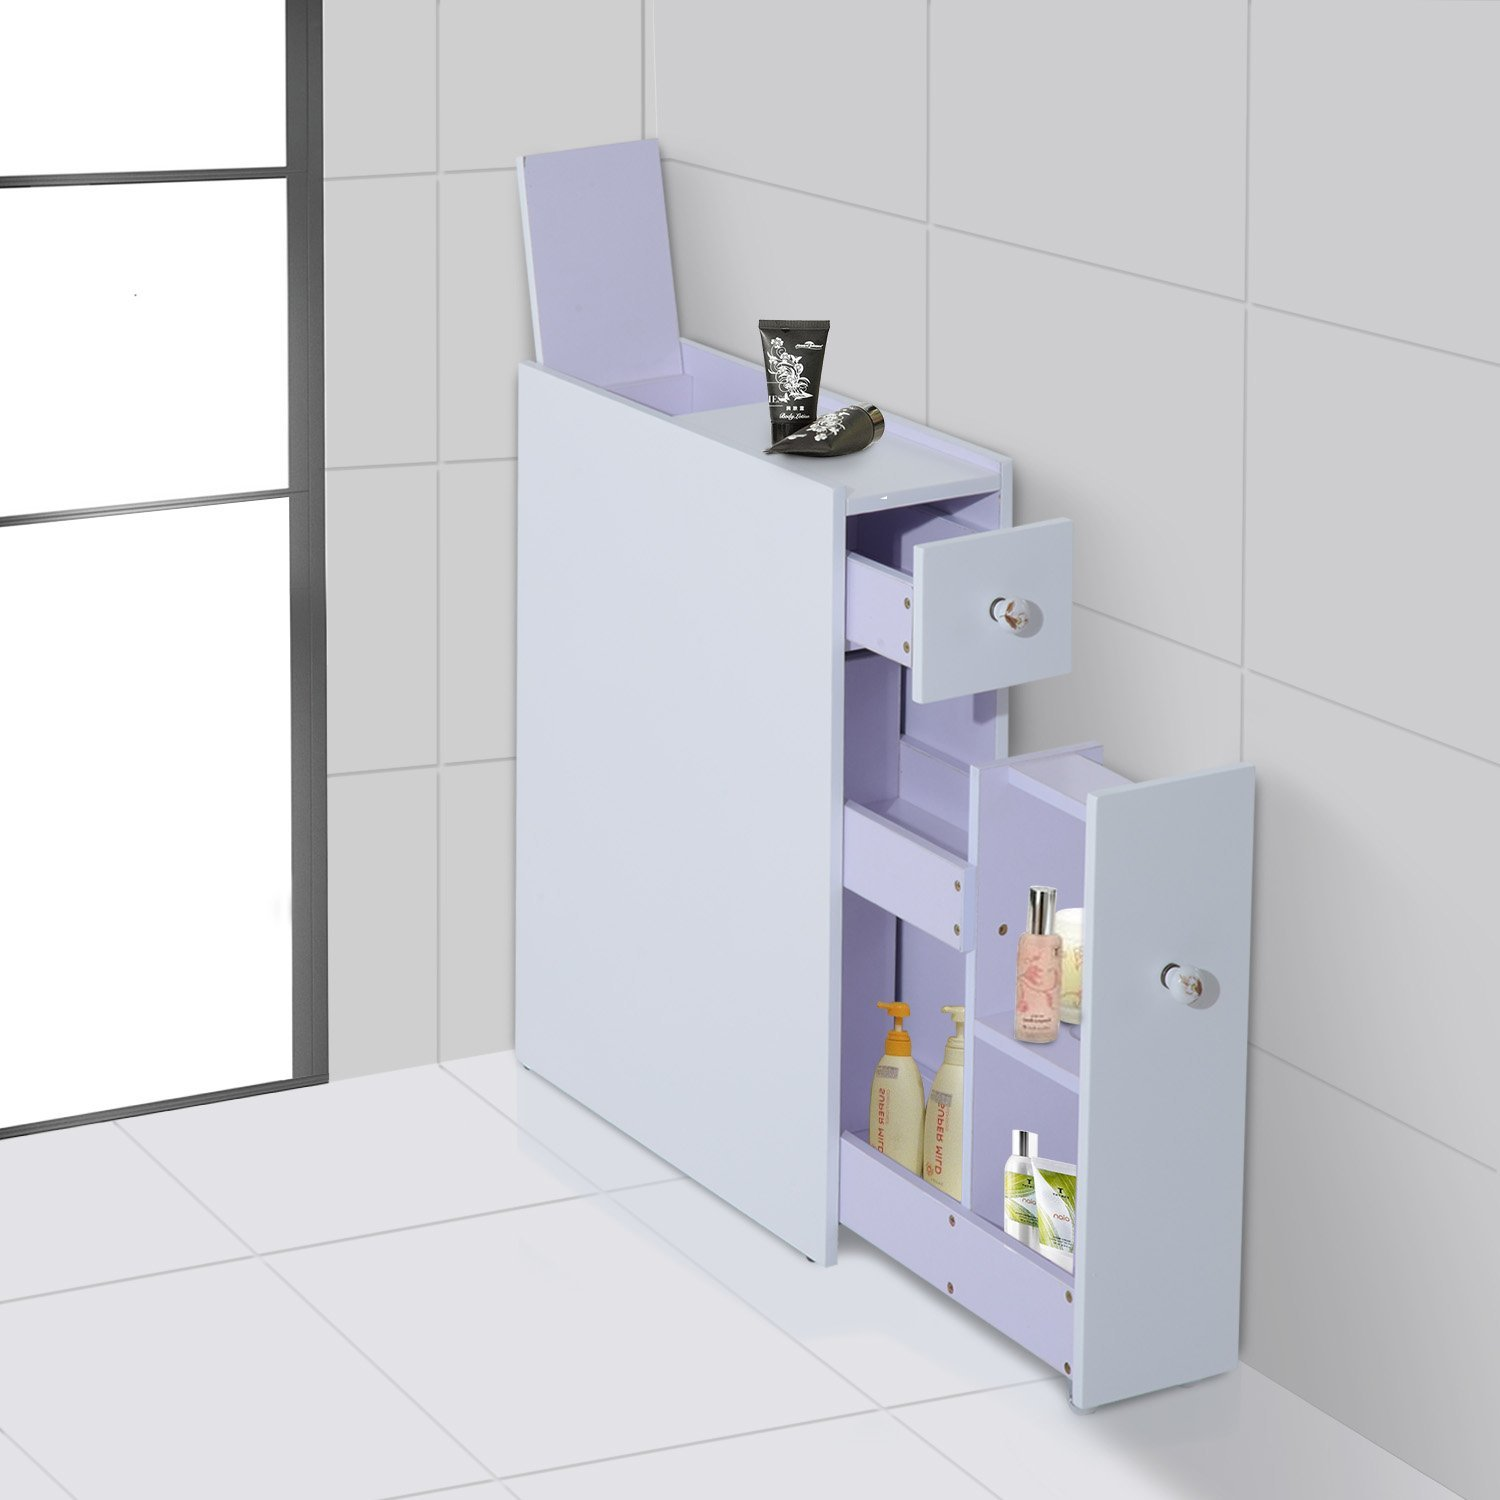 Floor Shelves For Bedroom Bathroom Floor Cabinet In White With Slide Out Storage